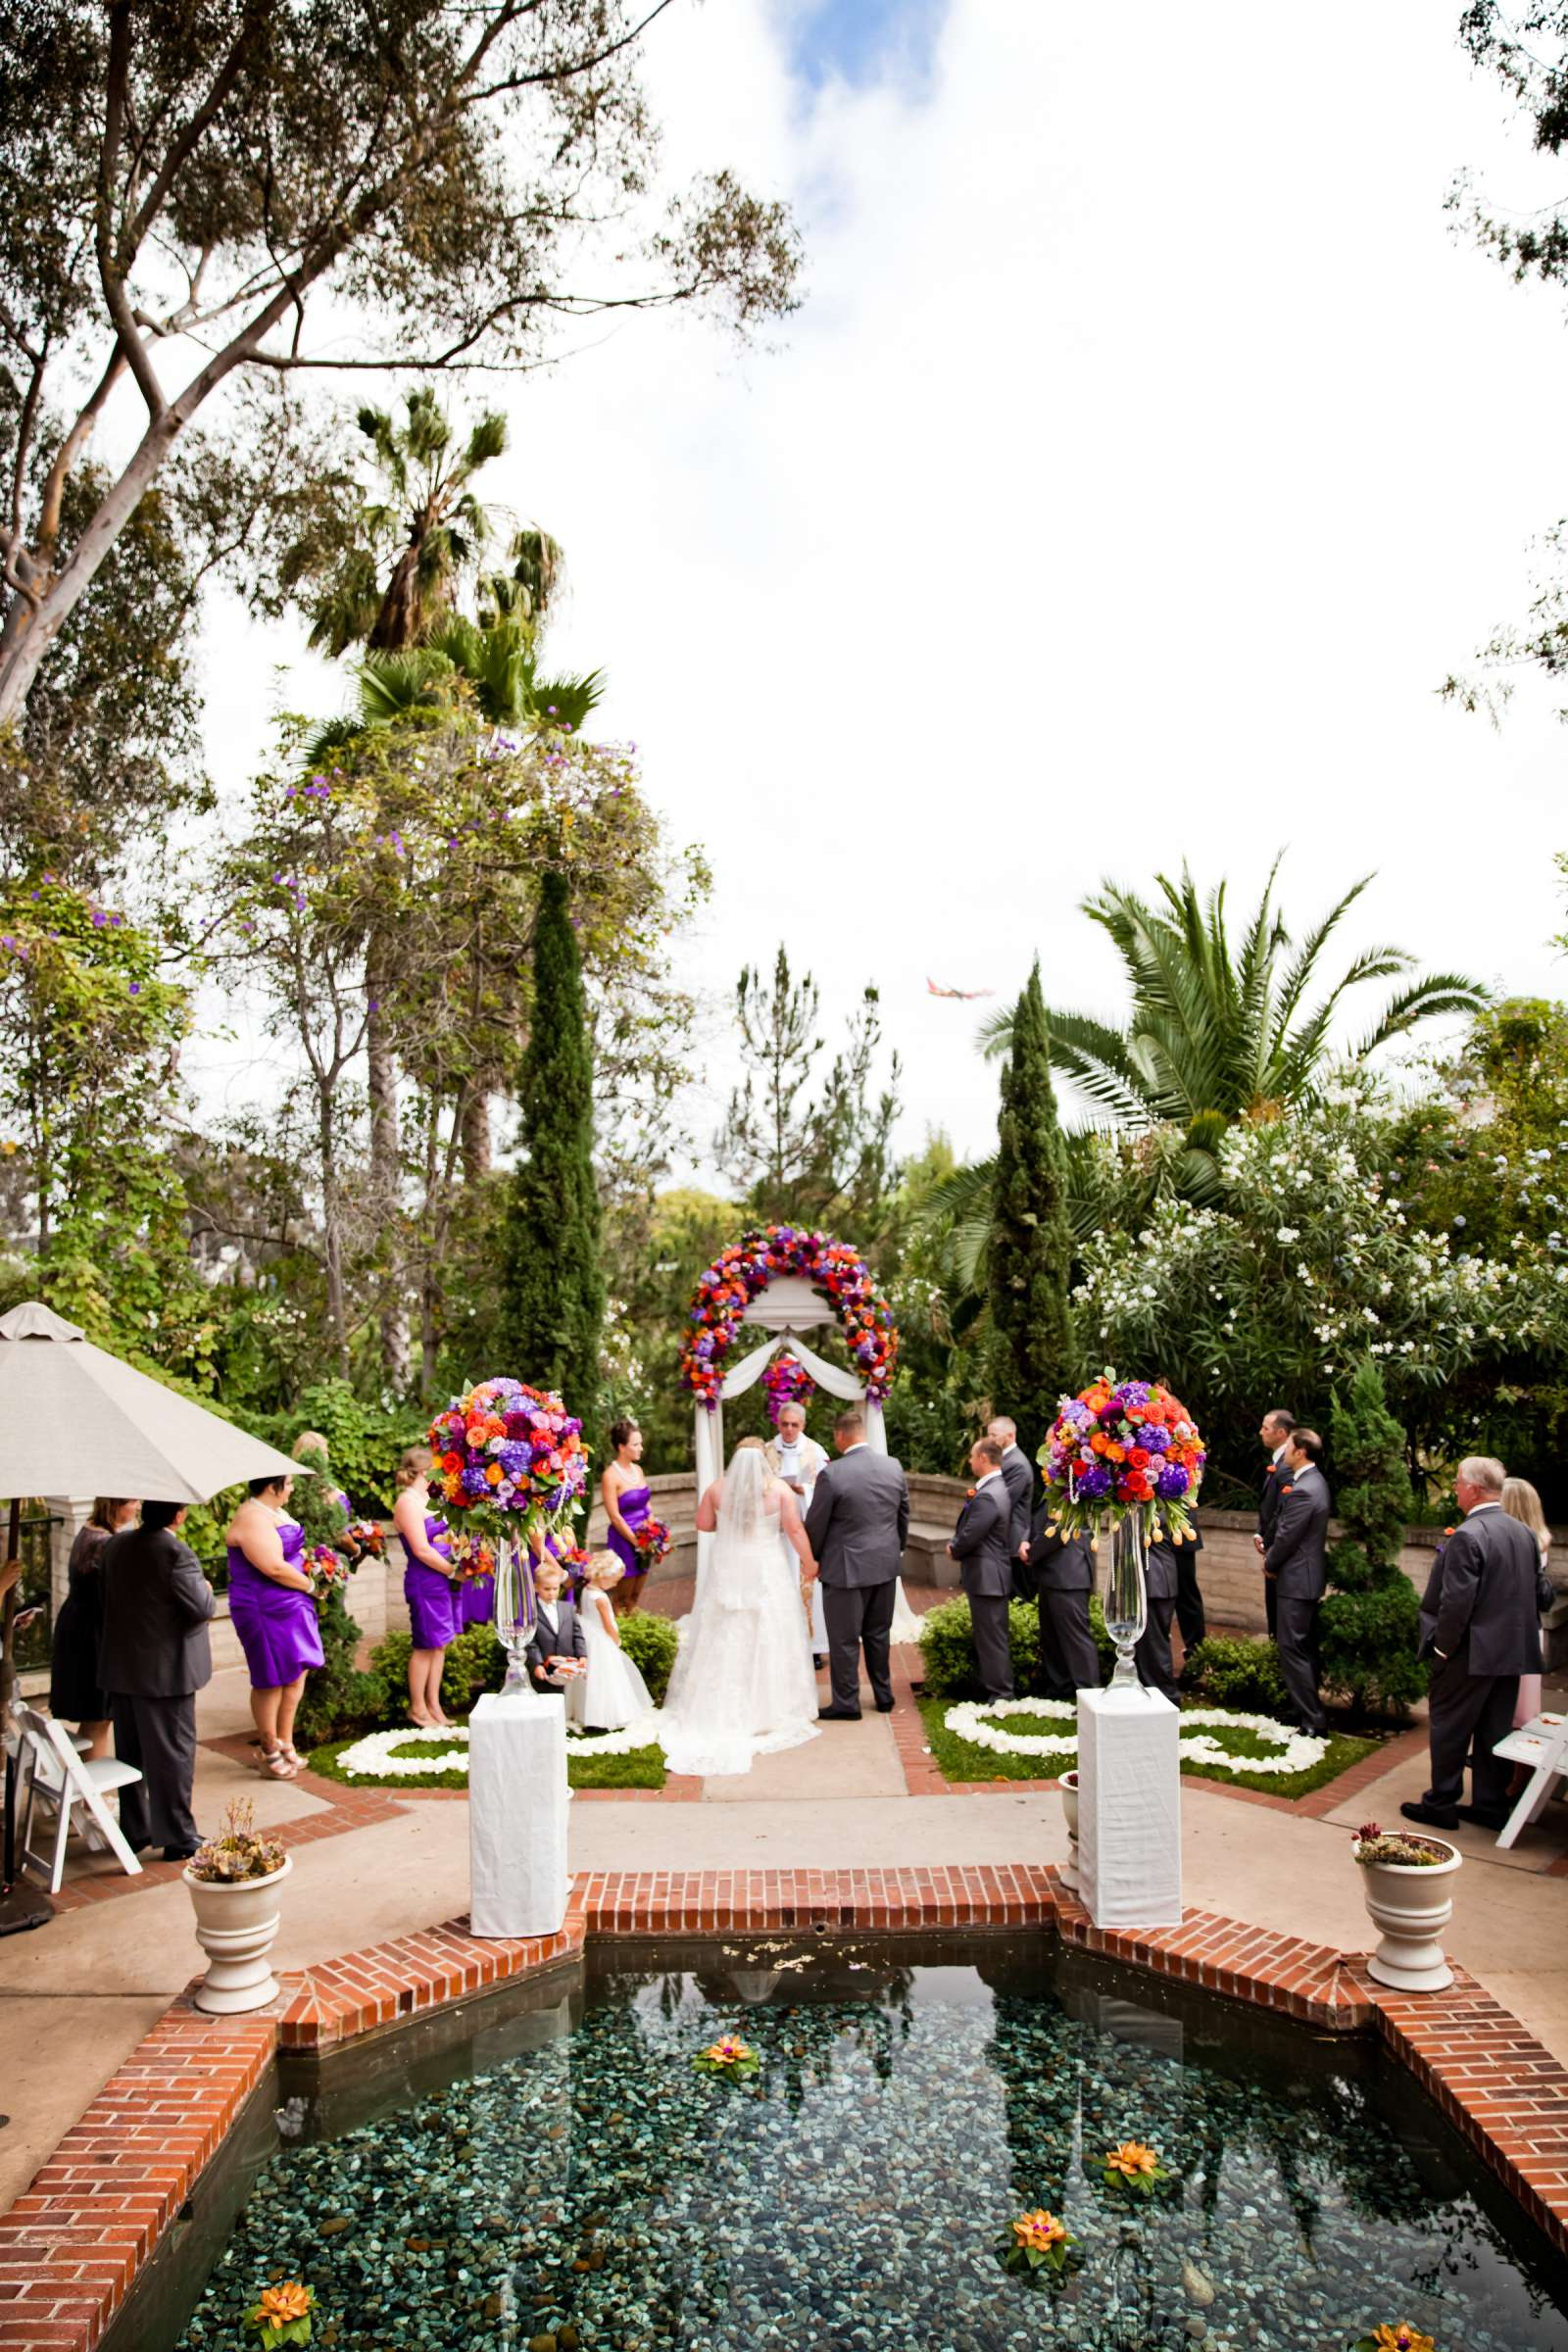 The Prado Wedding coordinated by Monarch Weddings, Eileen and Robbie Wedding Photo #46 by True Photography